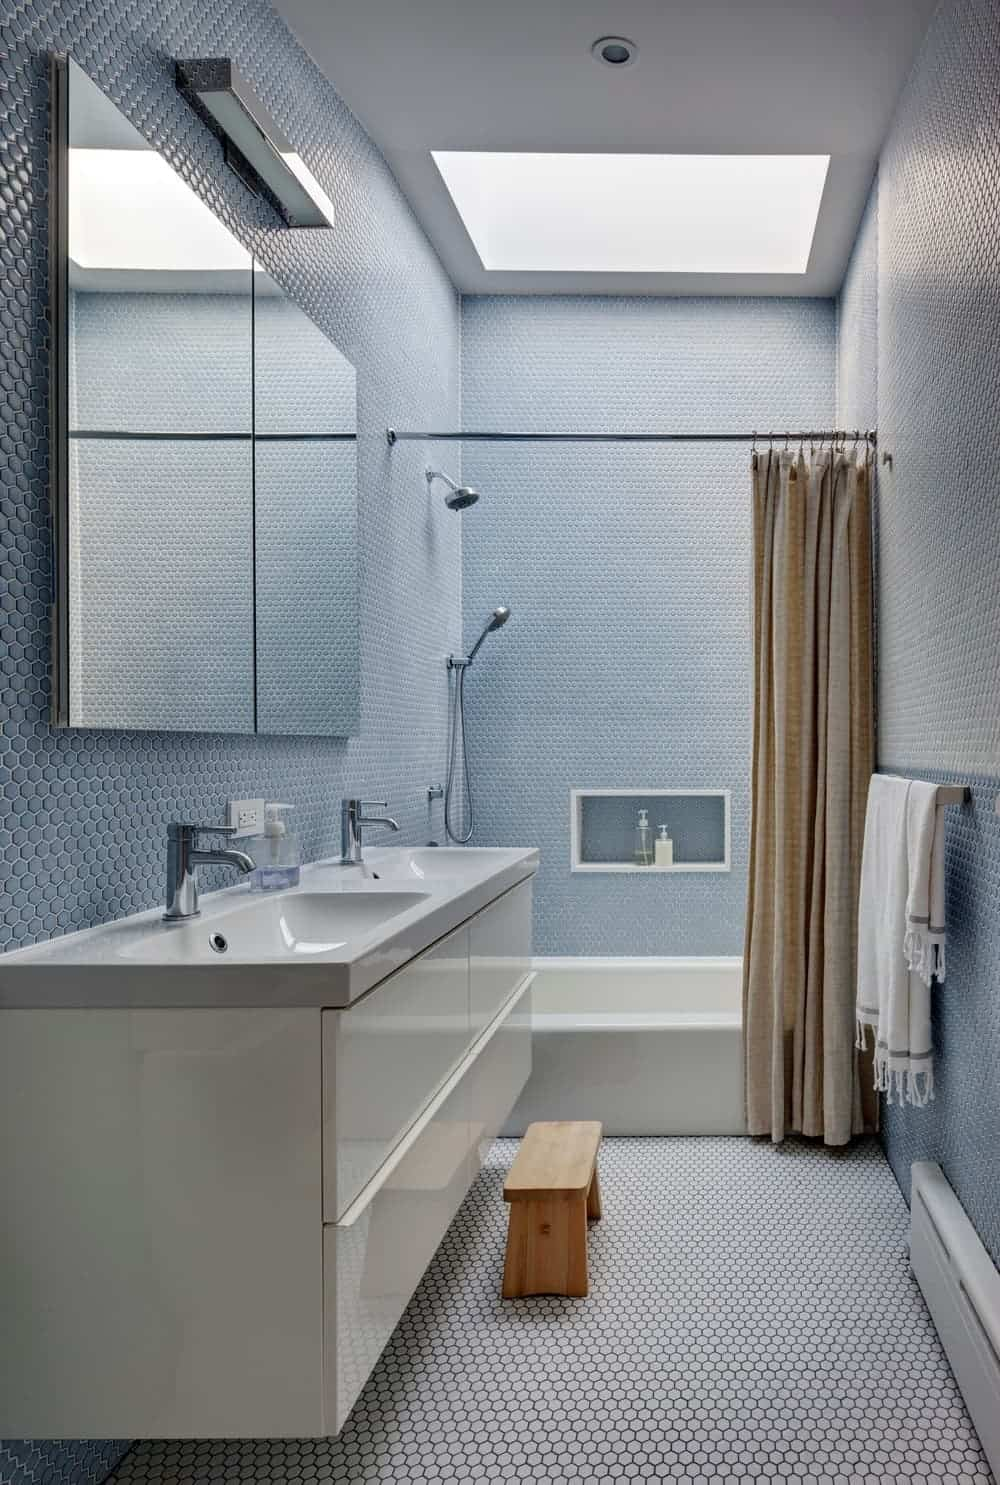 33 Terrific Small Primary Bathroom Ideas 2020 Photos